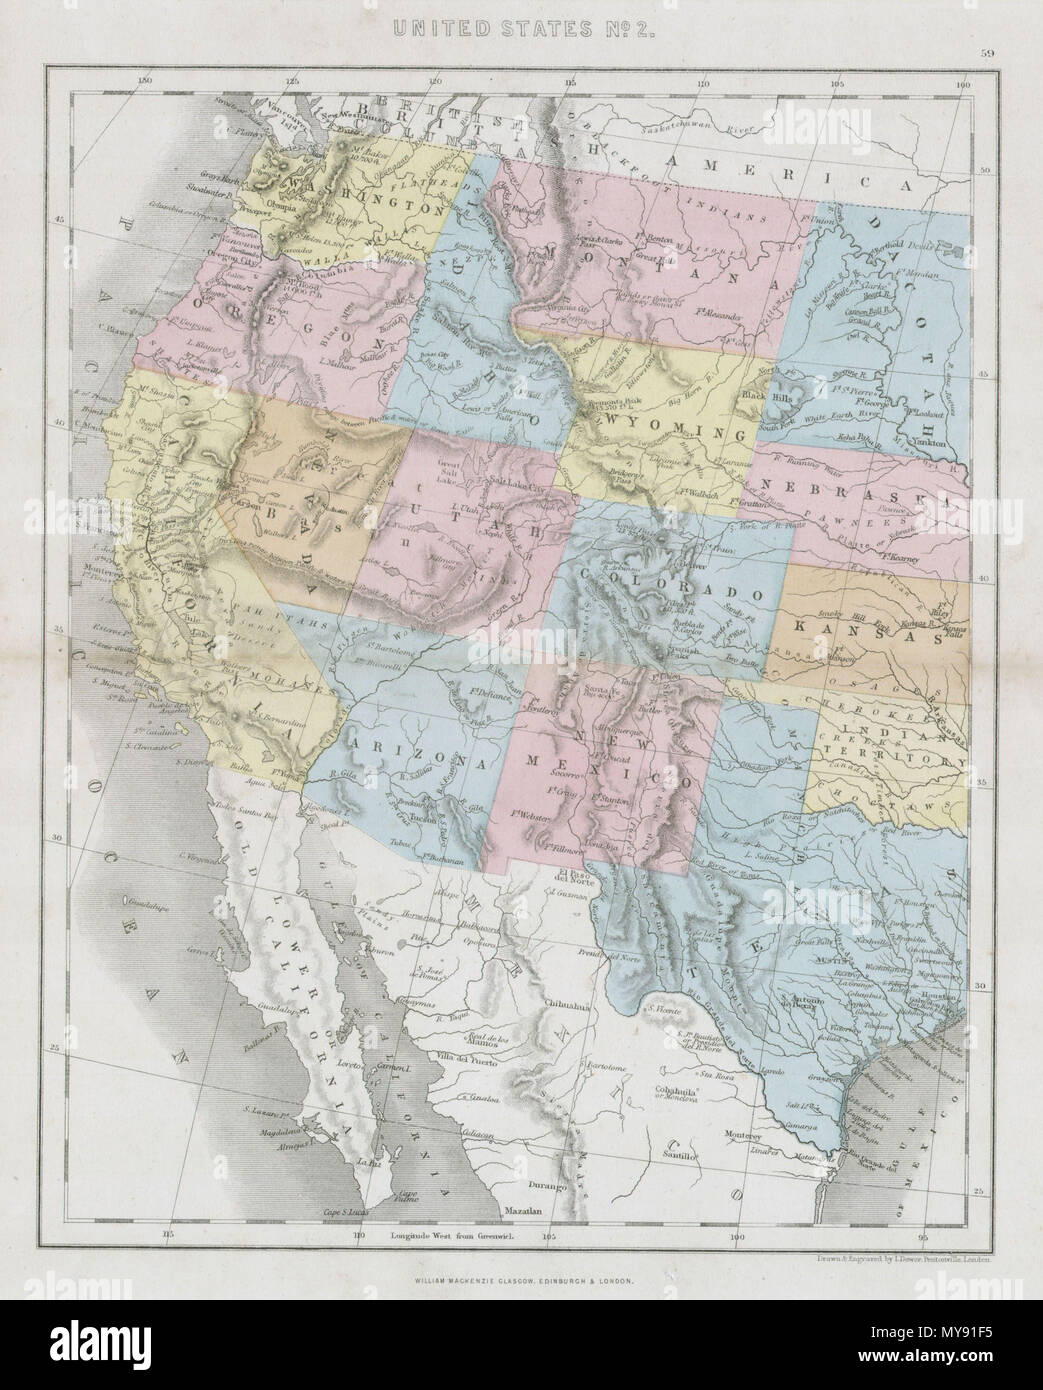 United States No. 2. English: This hand colored map depicts ...